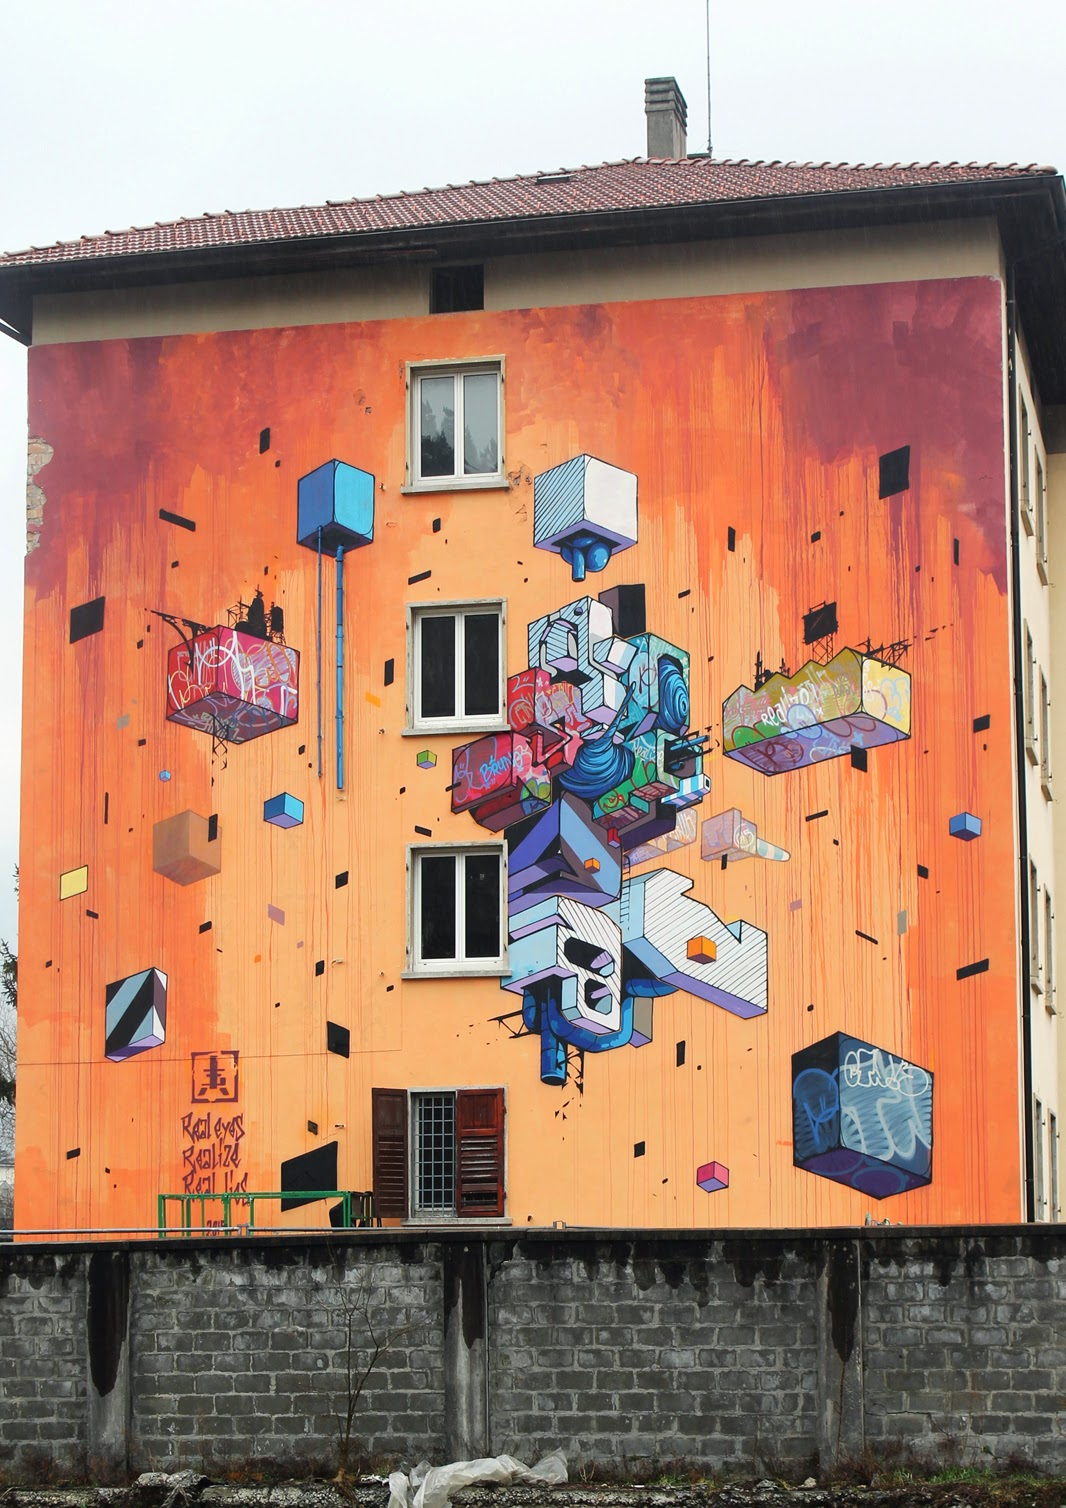 Etnik is currently in North Italy where he just finished working on this brand new mural on the streets of Trento at CSA Bruno.